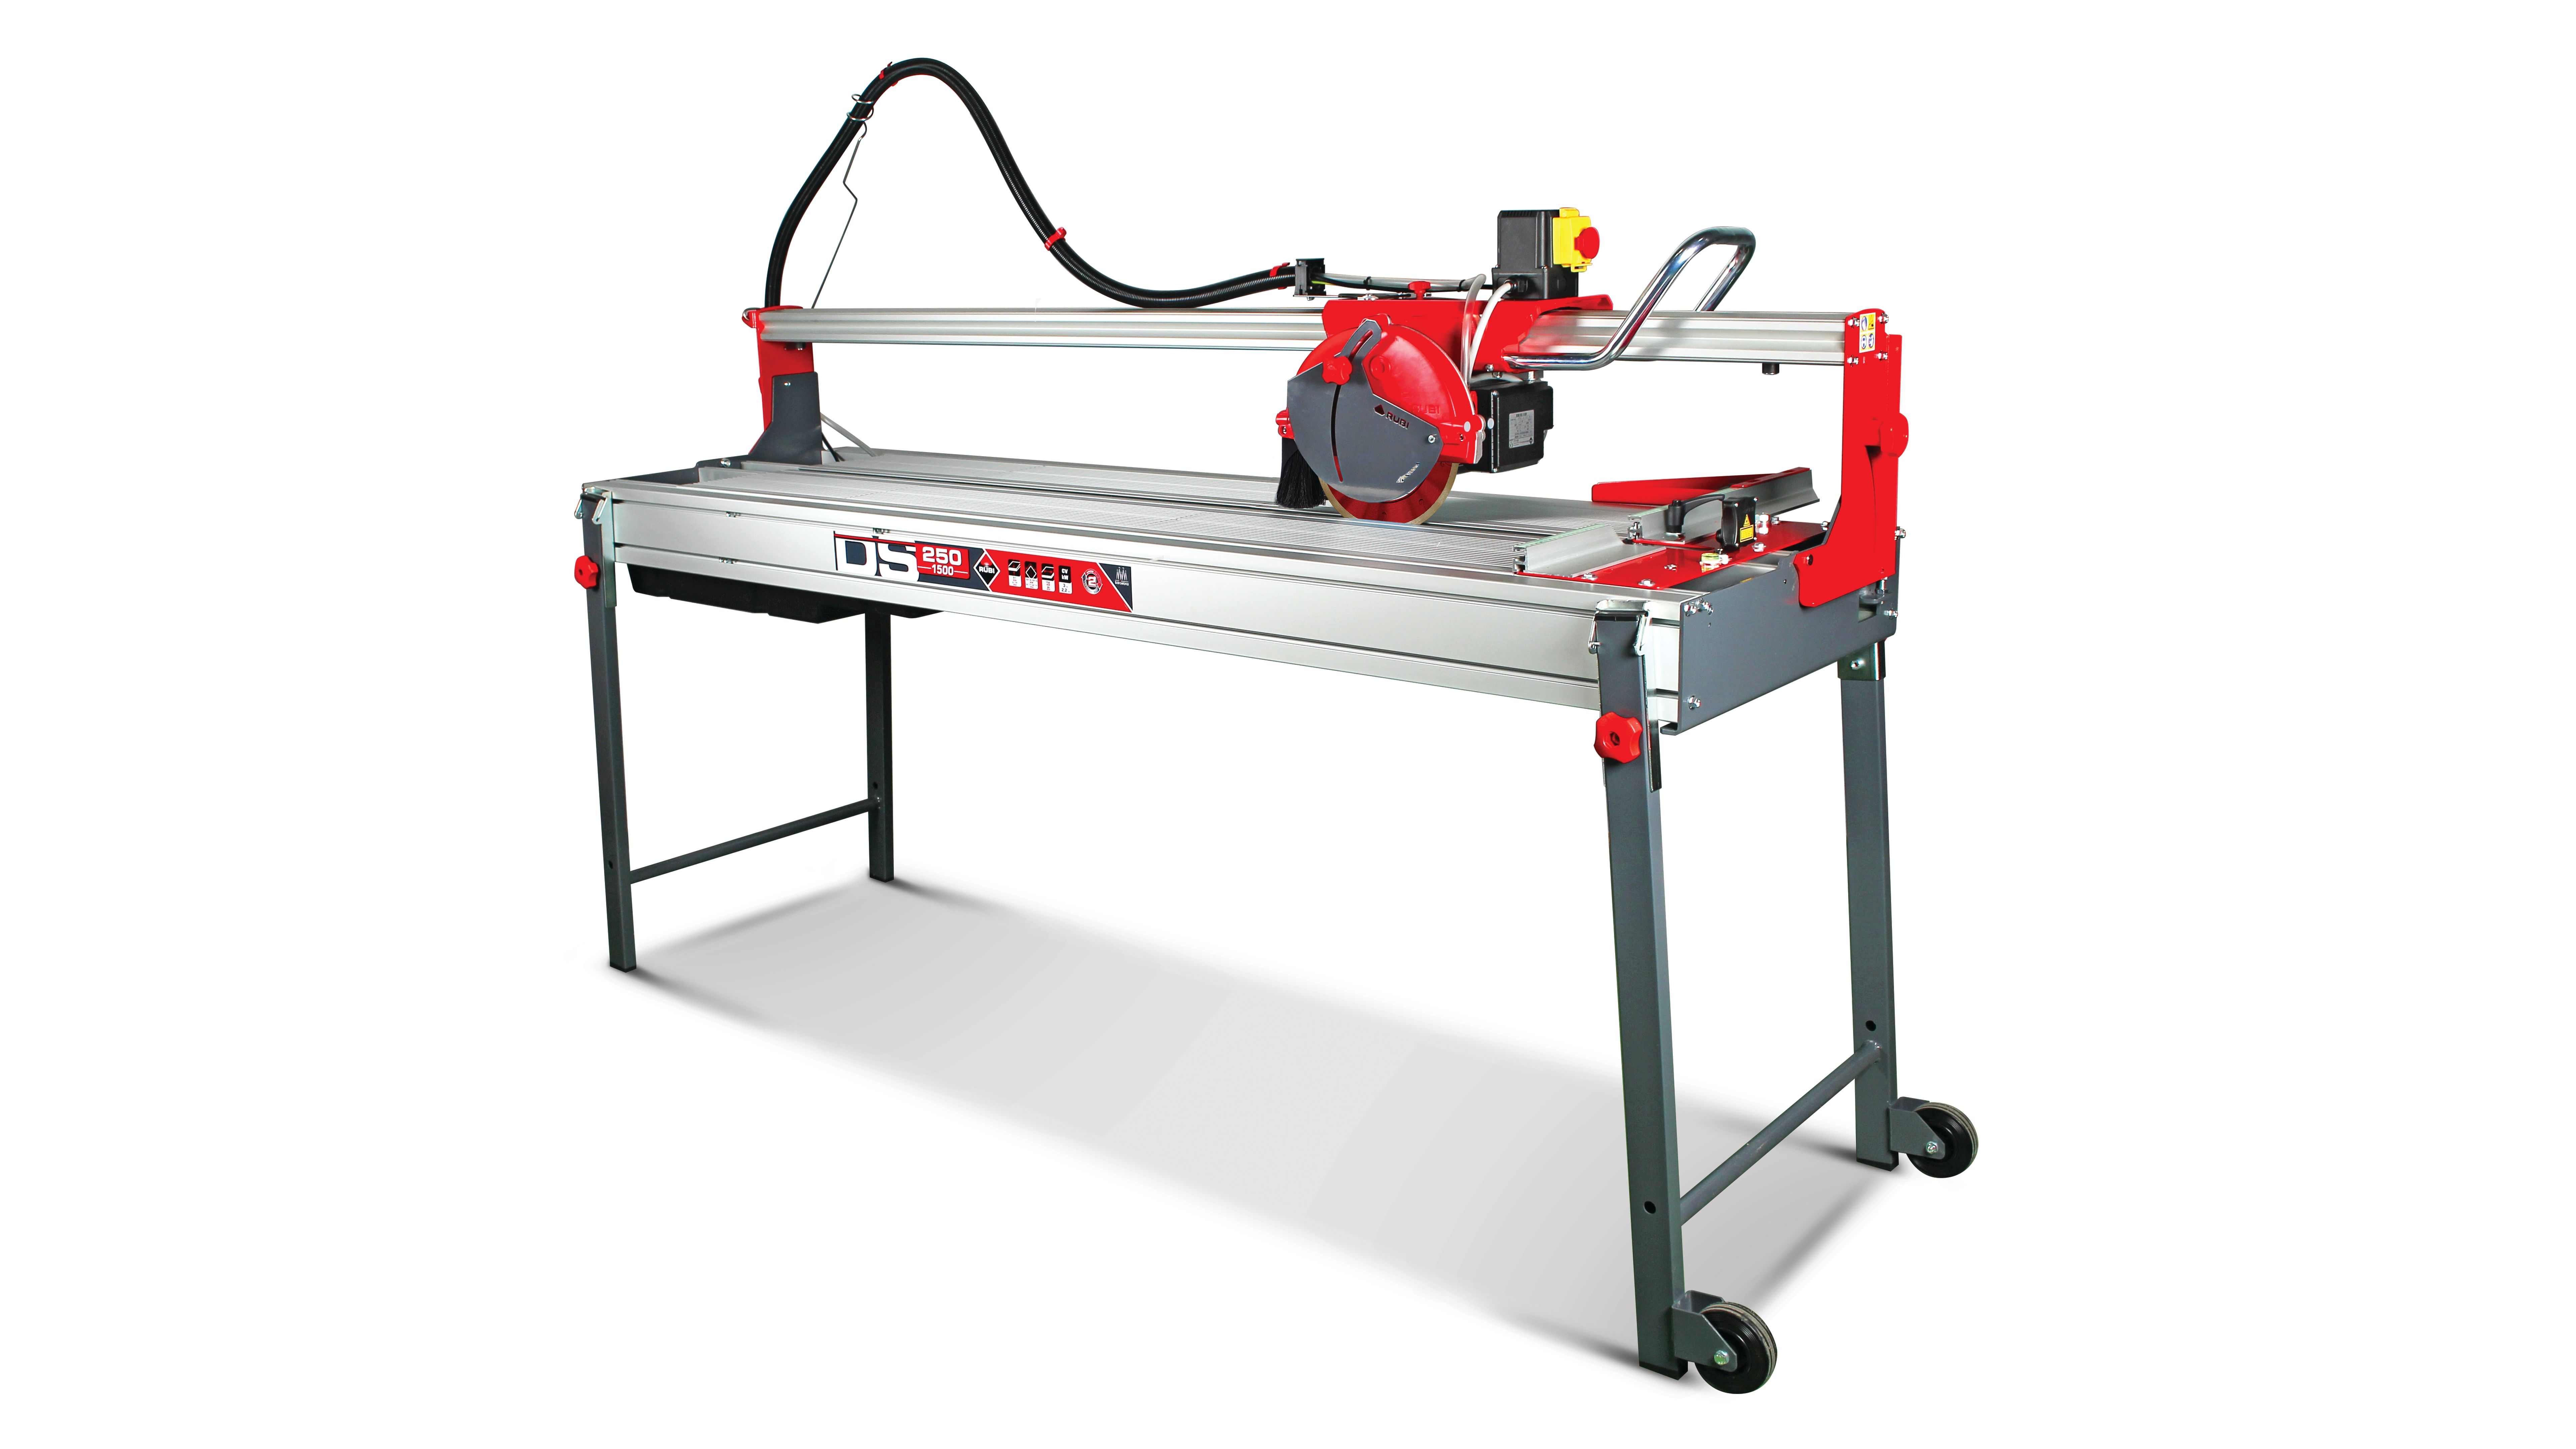 Rubi_Laser and Level Electric Cutter_52940